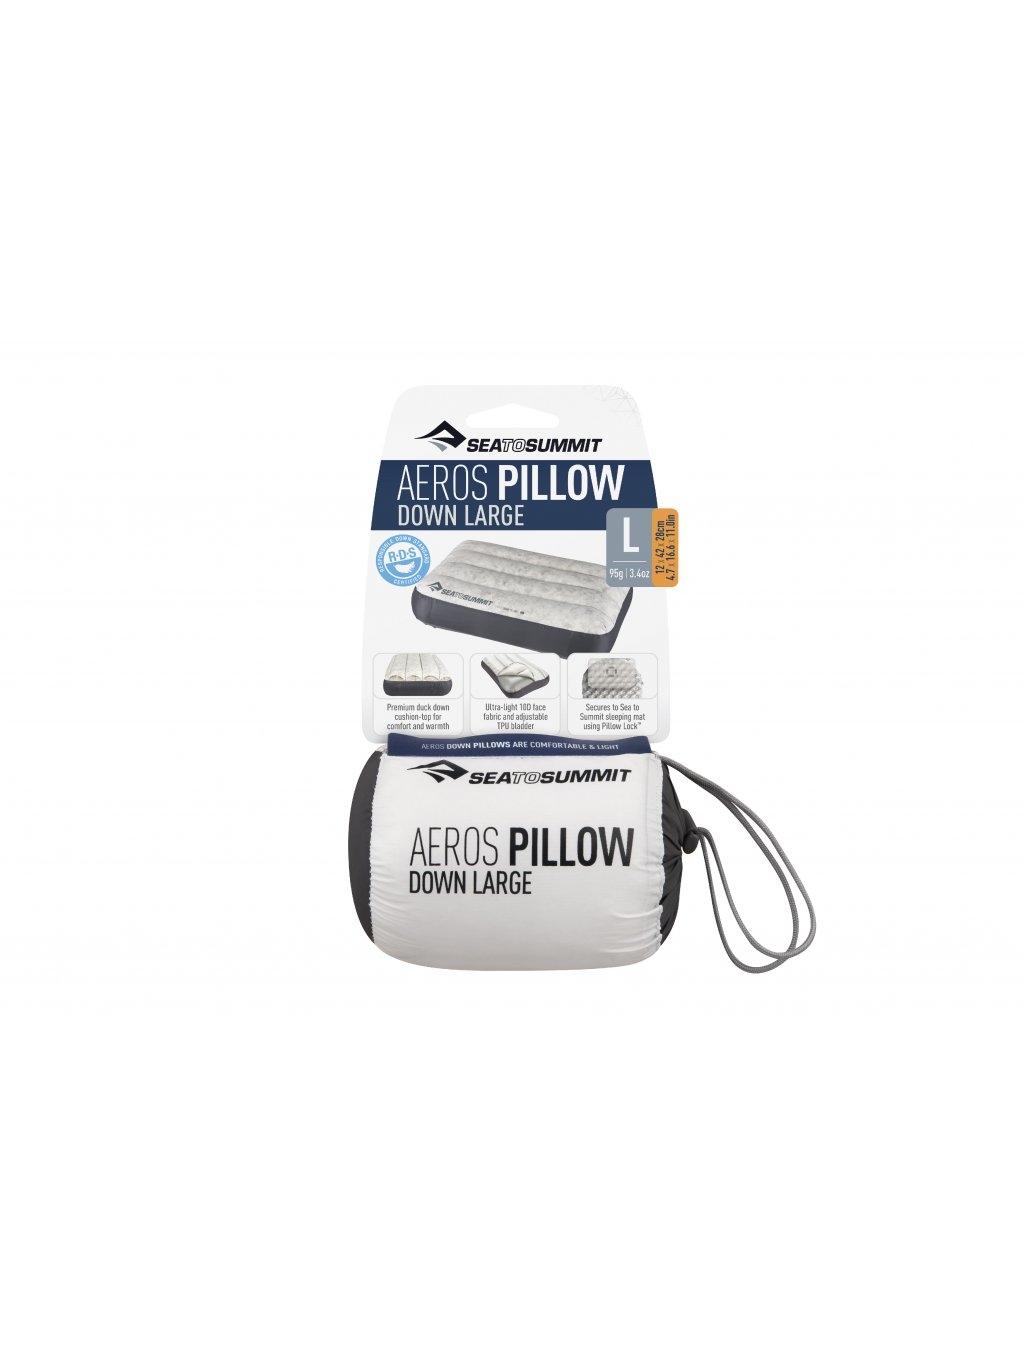 APILDOWNLGY AerosDownPillow Large Grey Packaging 01